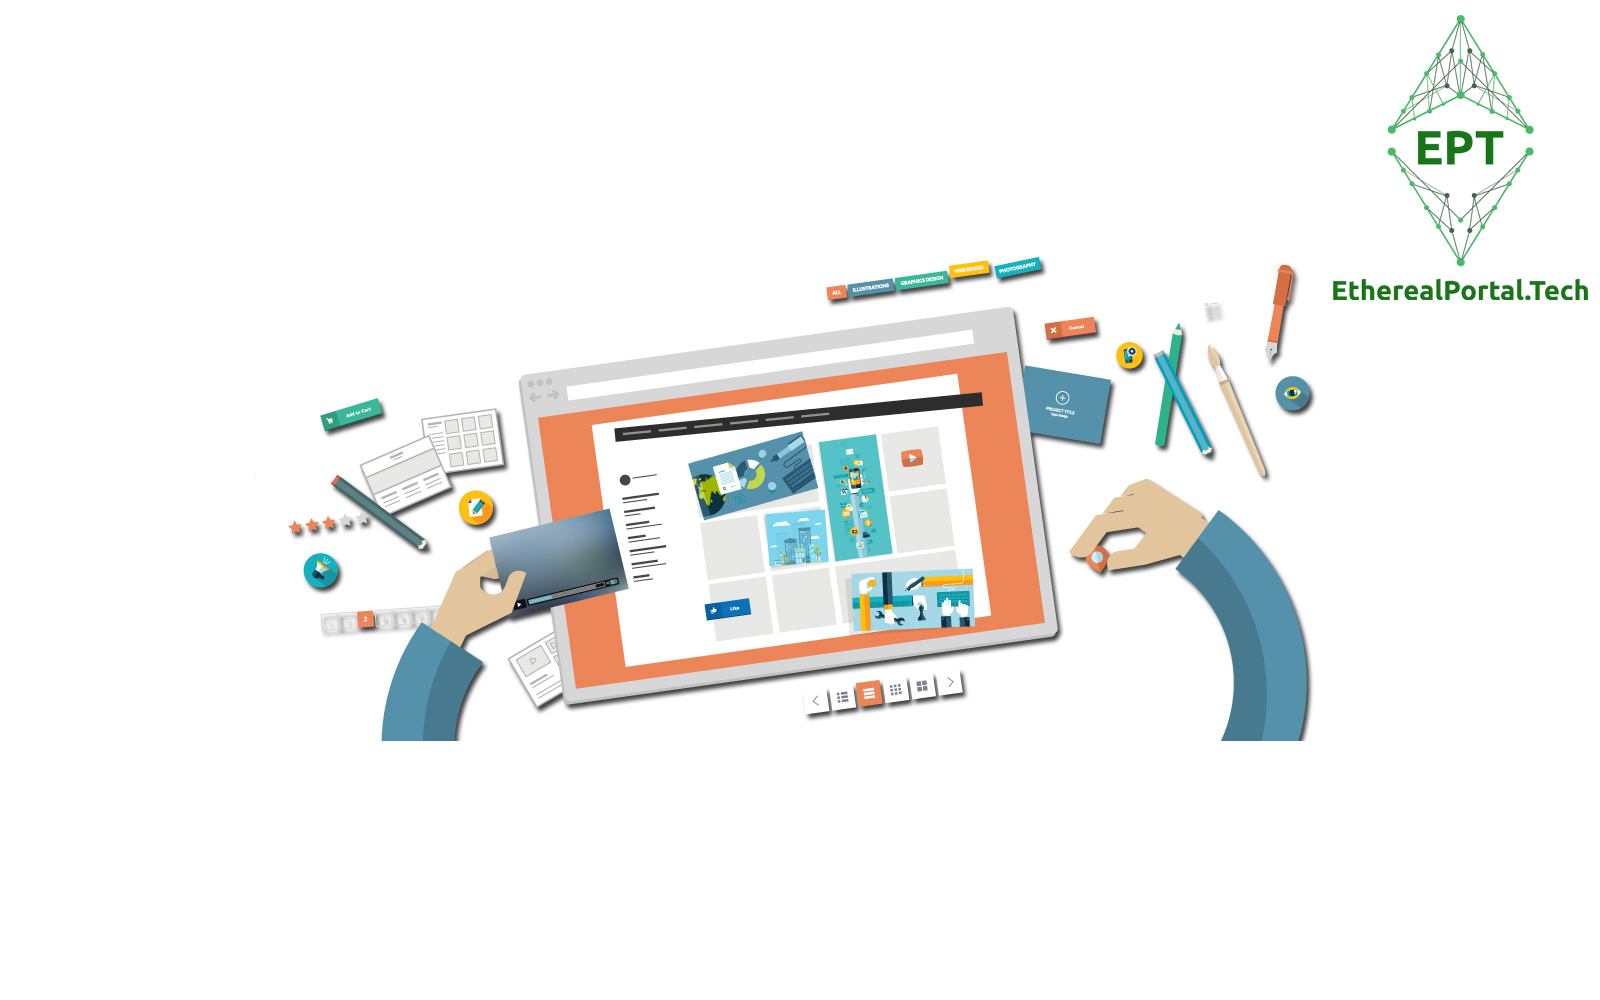 What Are Websites, Blogs, And Portals?